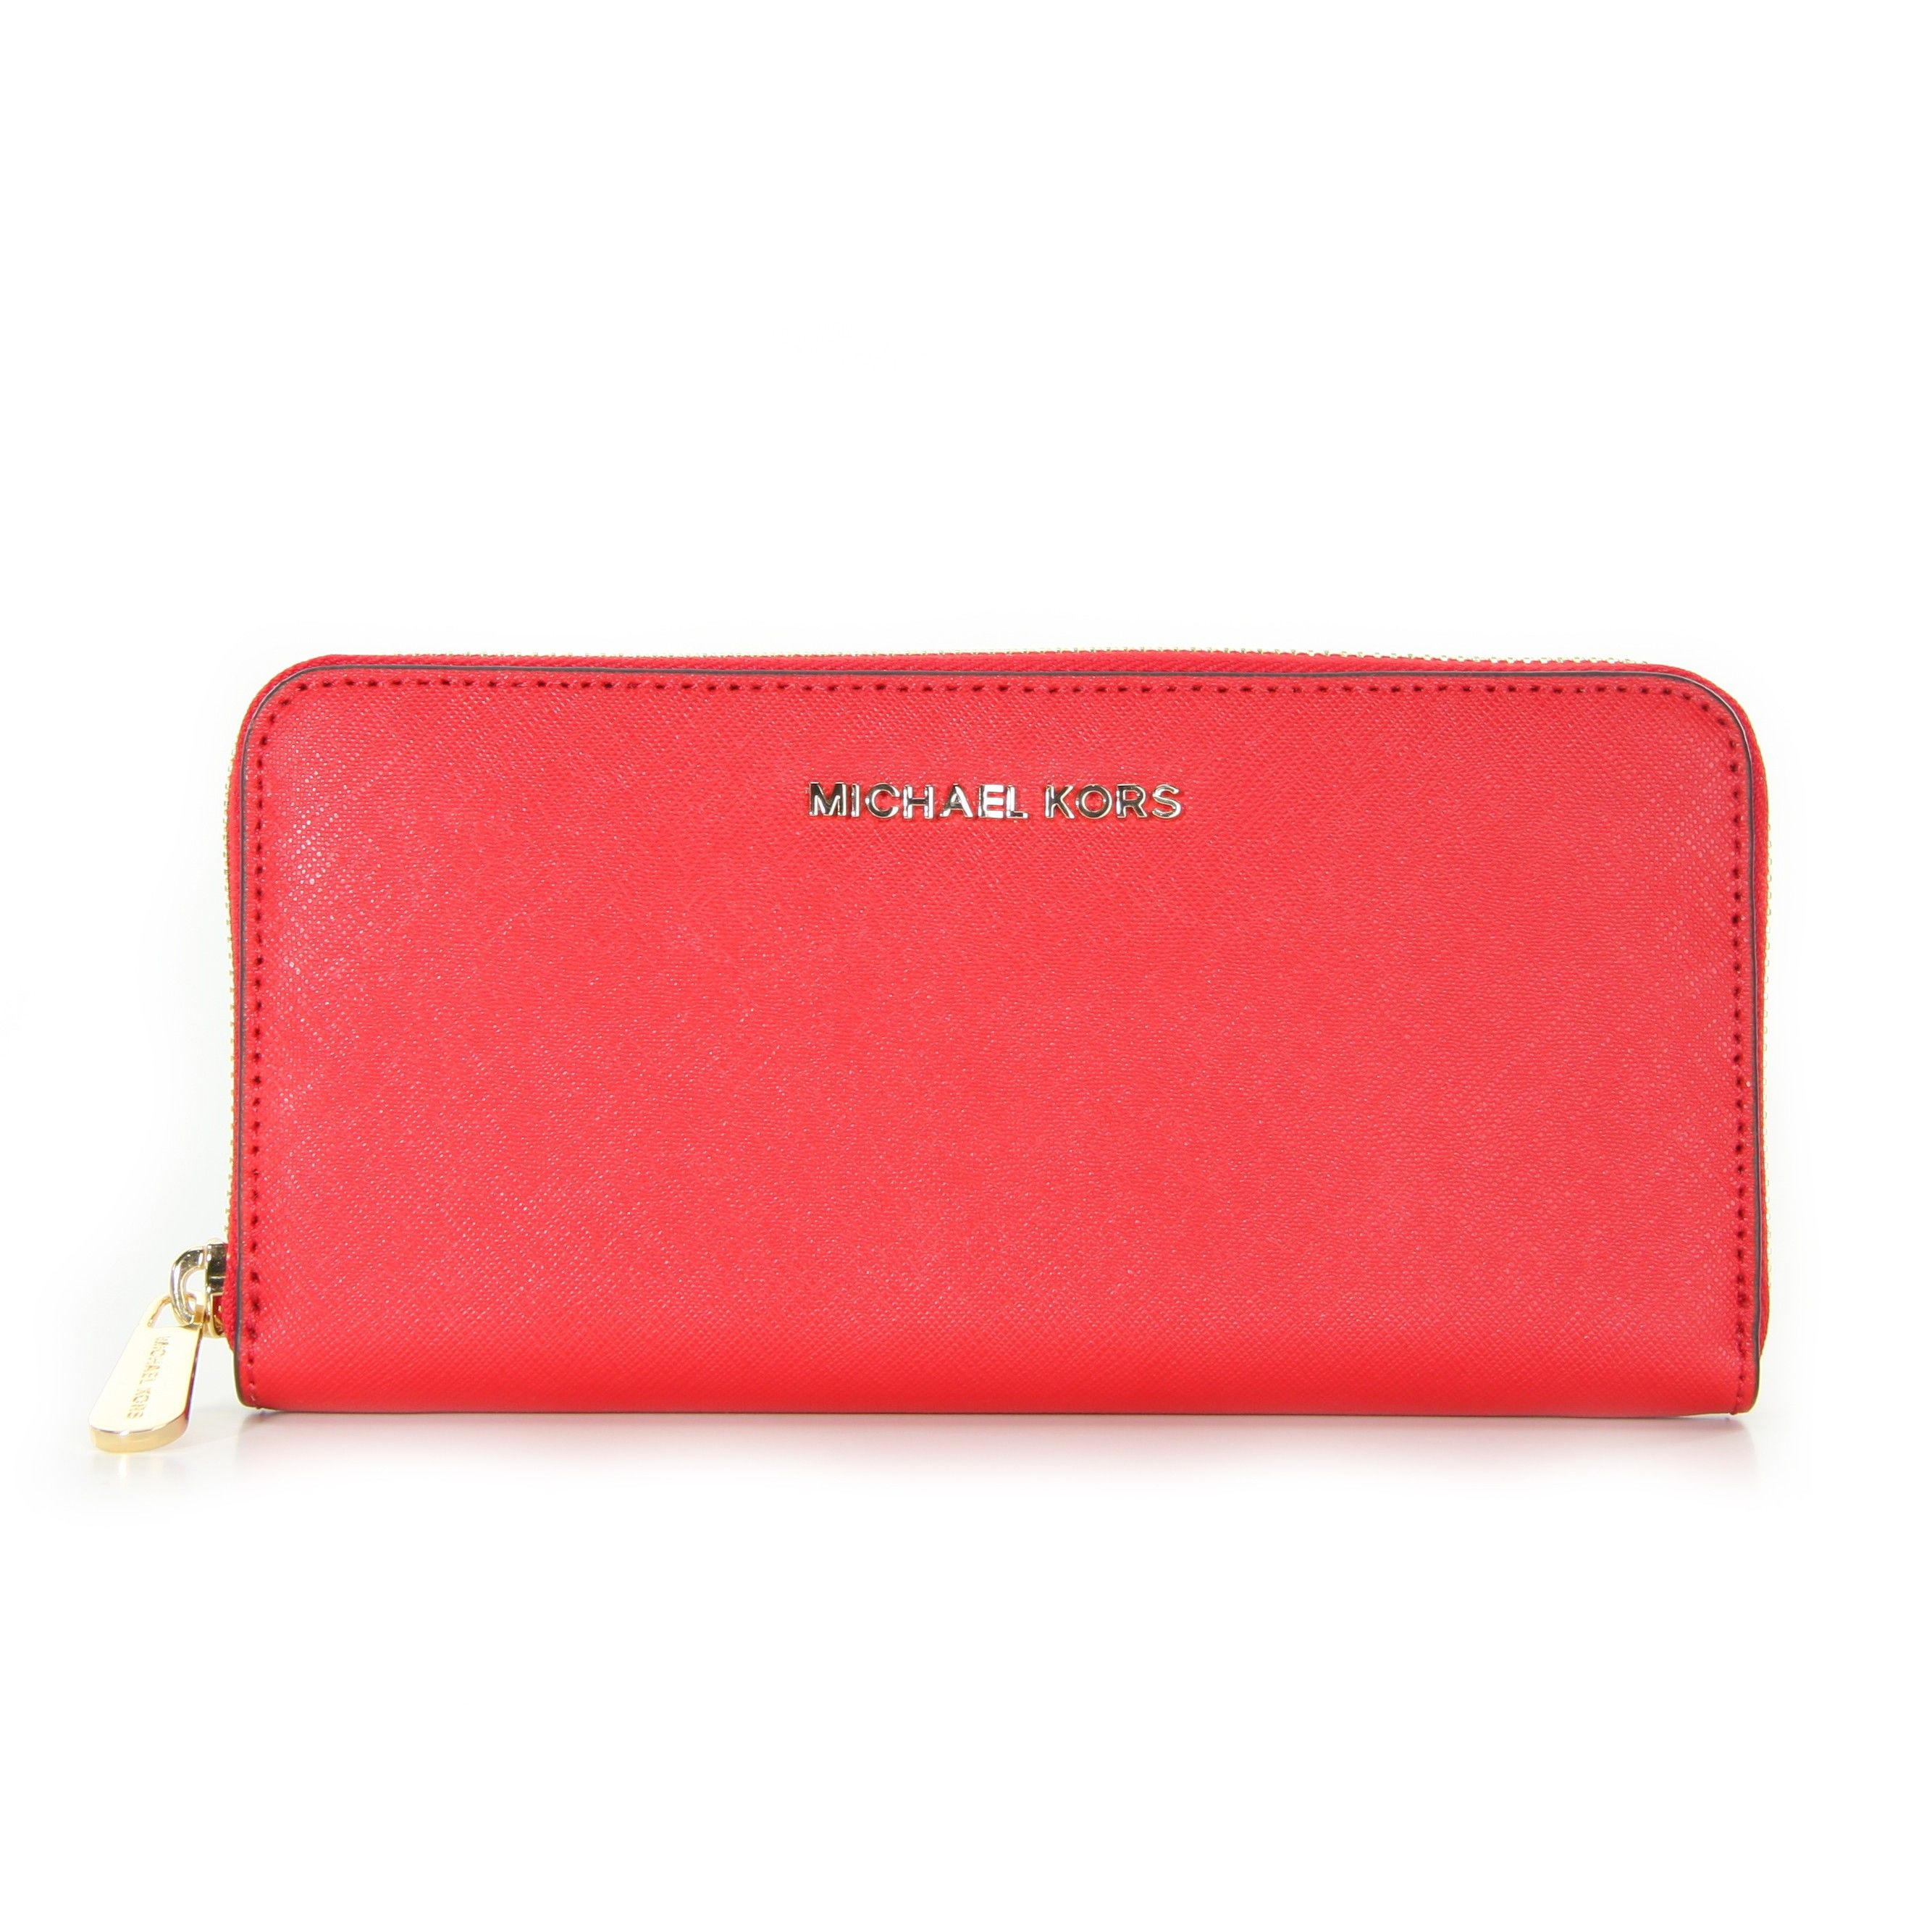 f2f102d18e27 Michael Kors Red Wallet Women | Stanford Center for Opportunity ...